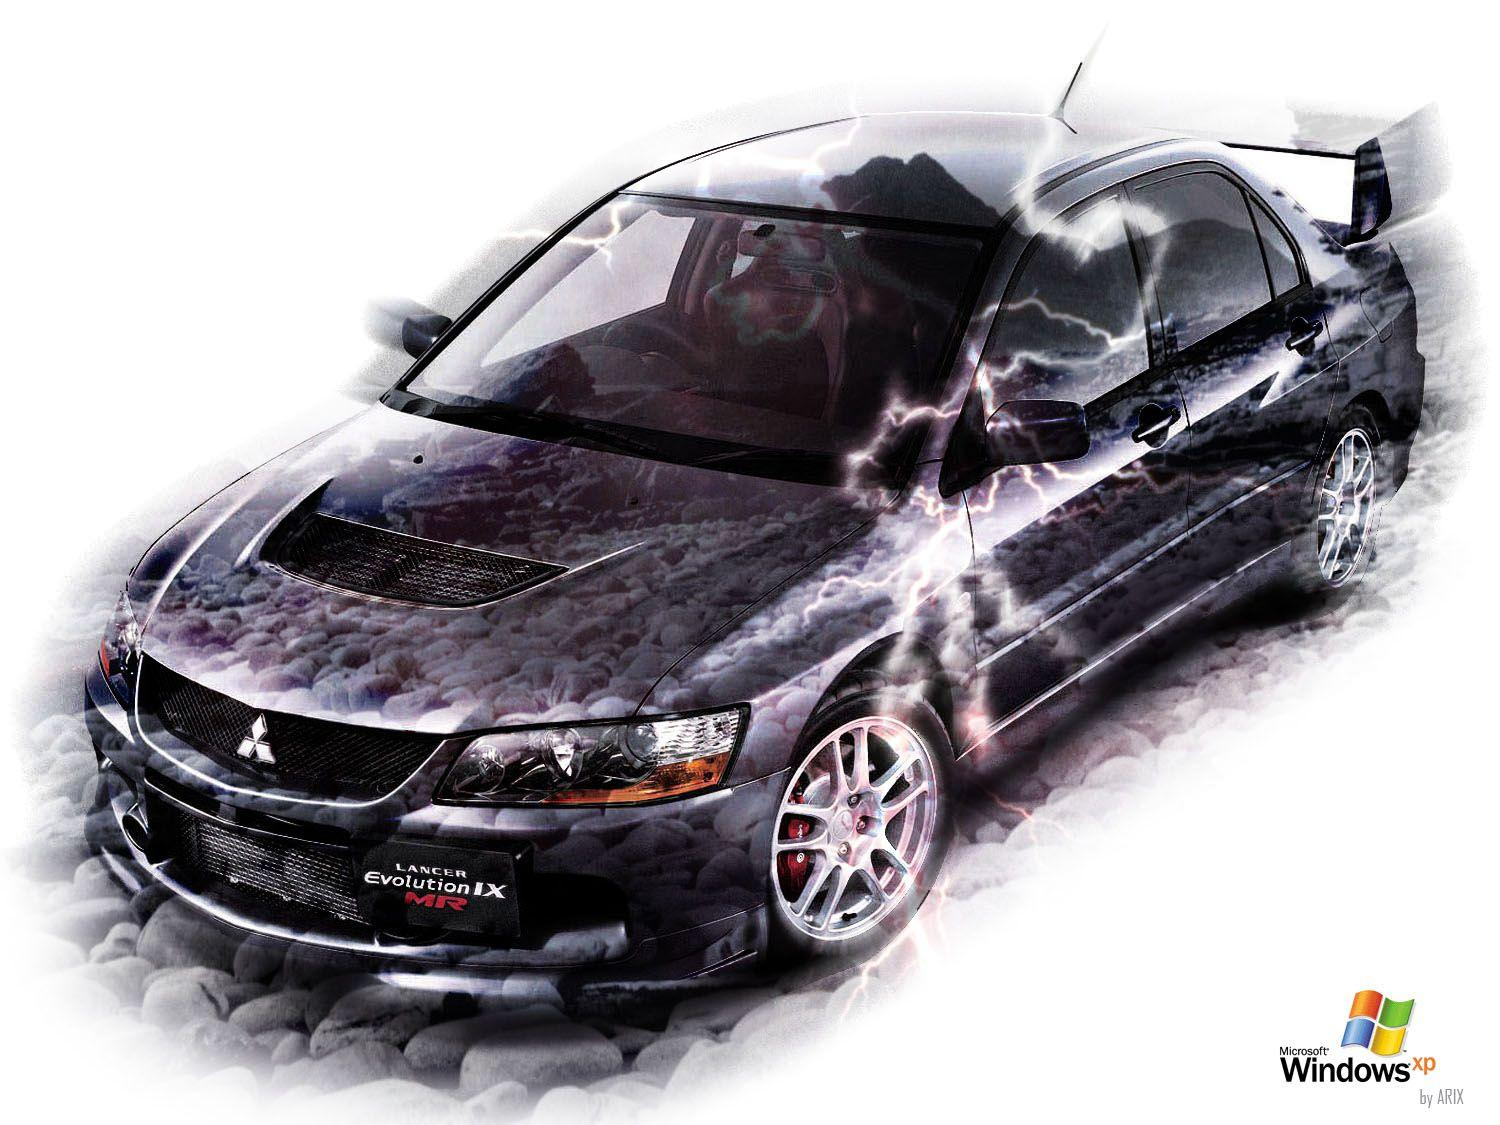 Mitsubishi lancer evolution wallpaper | Free wallpapers of the most ...